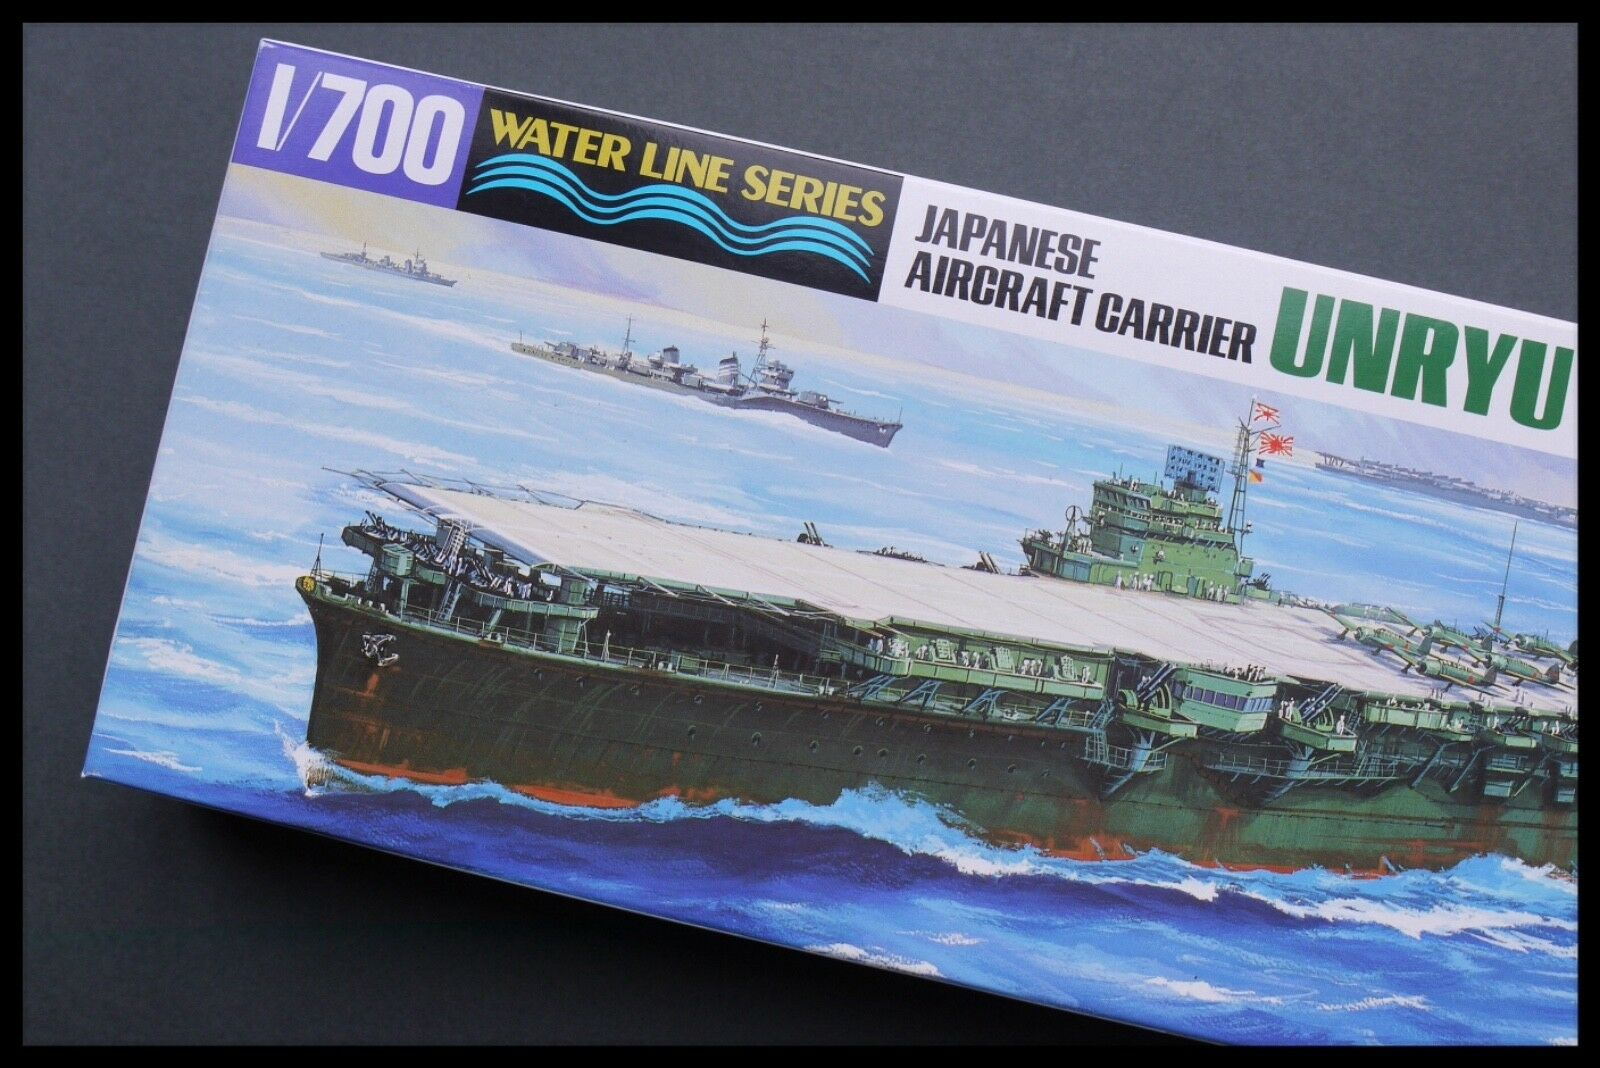 AOSHIMA UNRYU JAPANESE NAVY AIRCRAFT CARRIER WL 01486-2000 1 700 Scale Model Kit